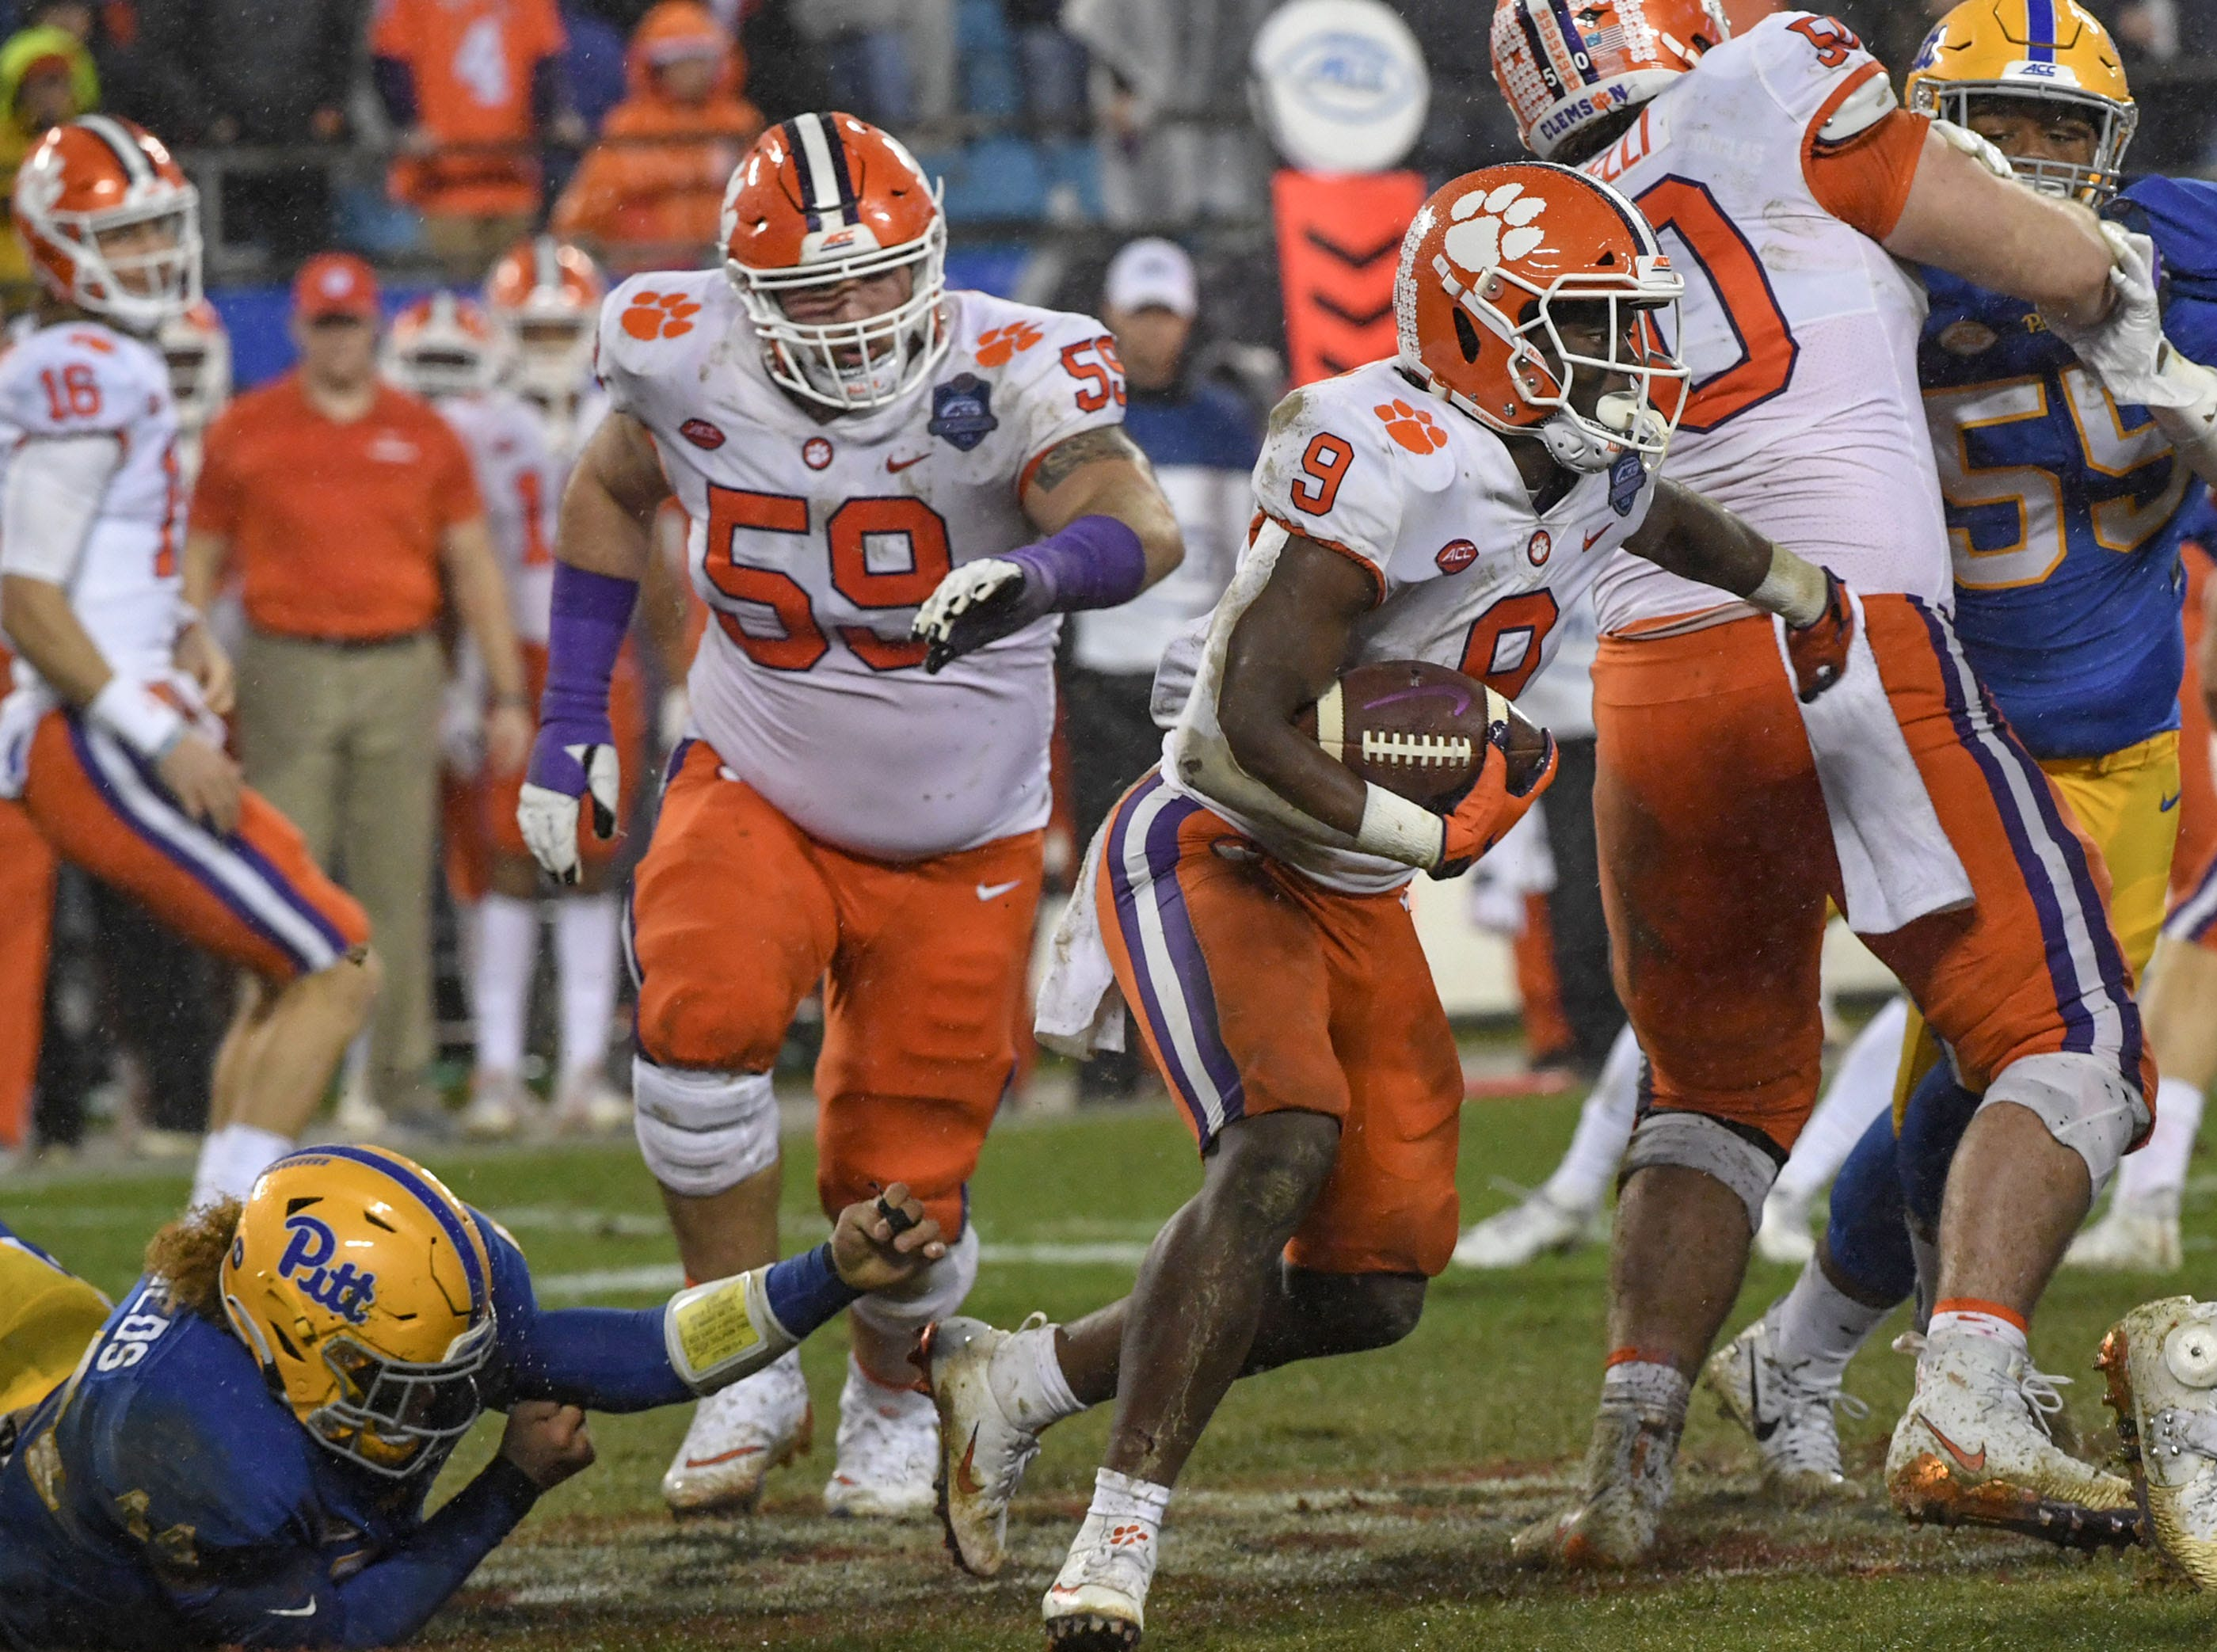 Clemson running back Travis Etienne (9) runs during the second quarter of the Dr. Pepper ACC football championship at Bank of America Stadium in Charlotte, N.C. on Saturday, December 1, 2018.